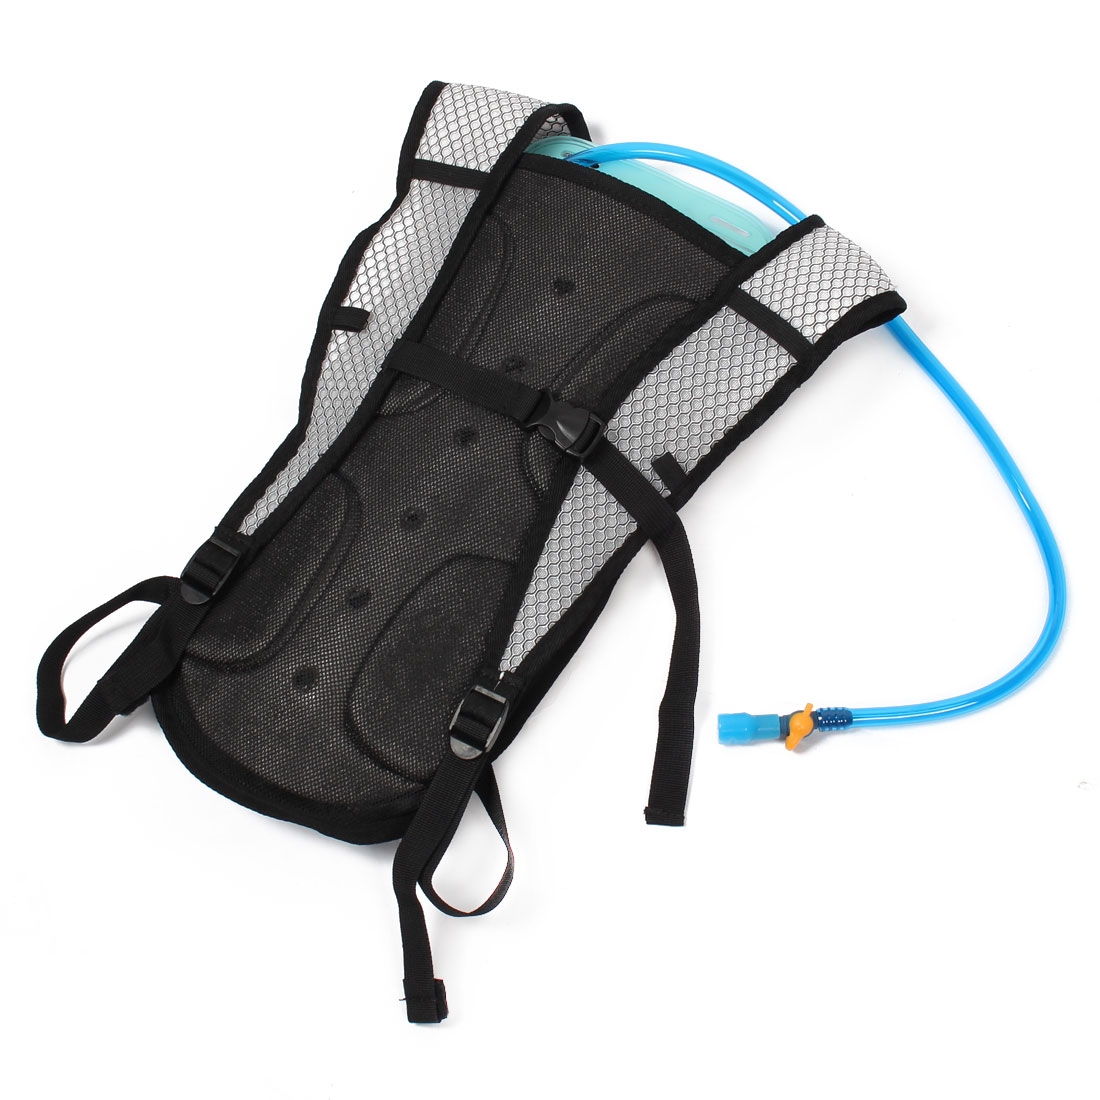 B-SOUL Authorized Outdoor Cycling Mountain Bike Backpack Bladder Water Bag - image 3 de 5